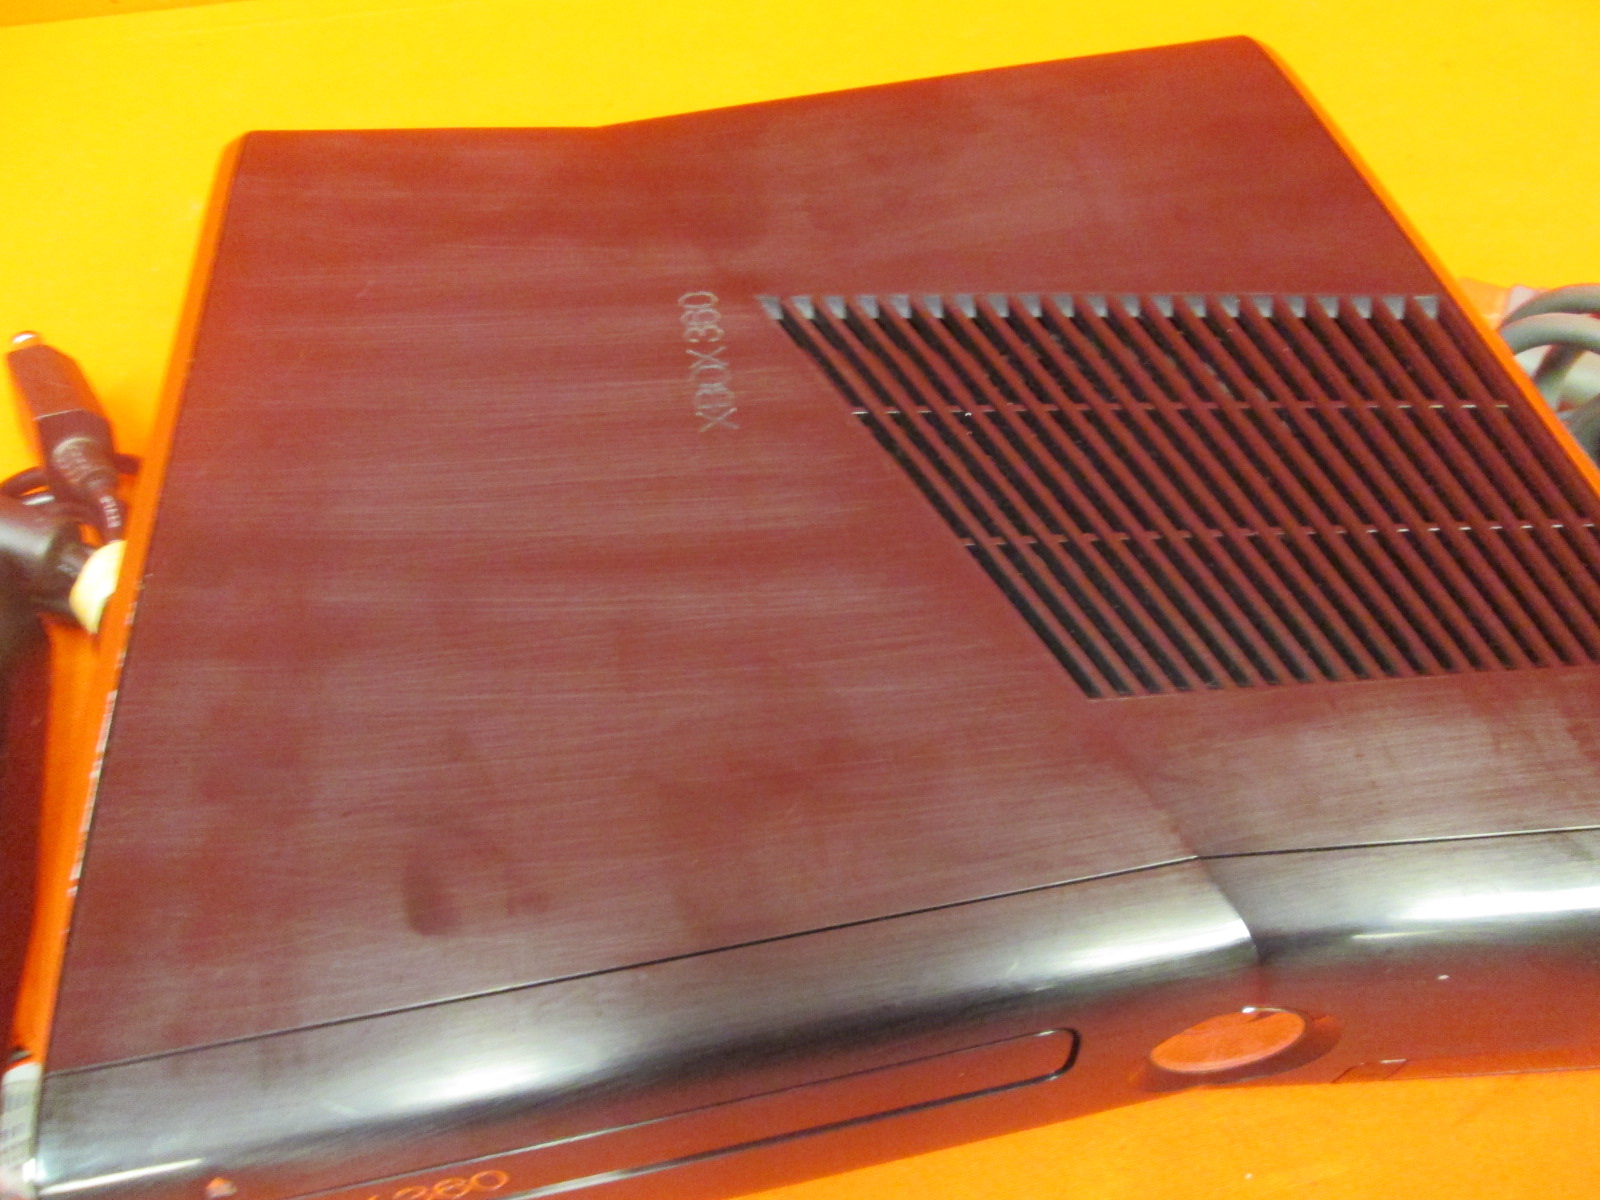 Image 1 of Microsoft Xbox 360 S 120GB Video Game System With Controller